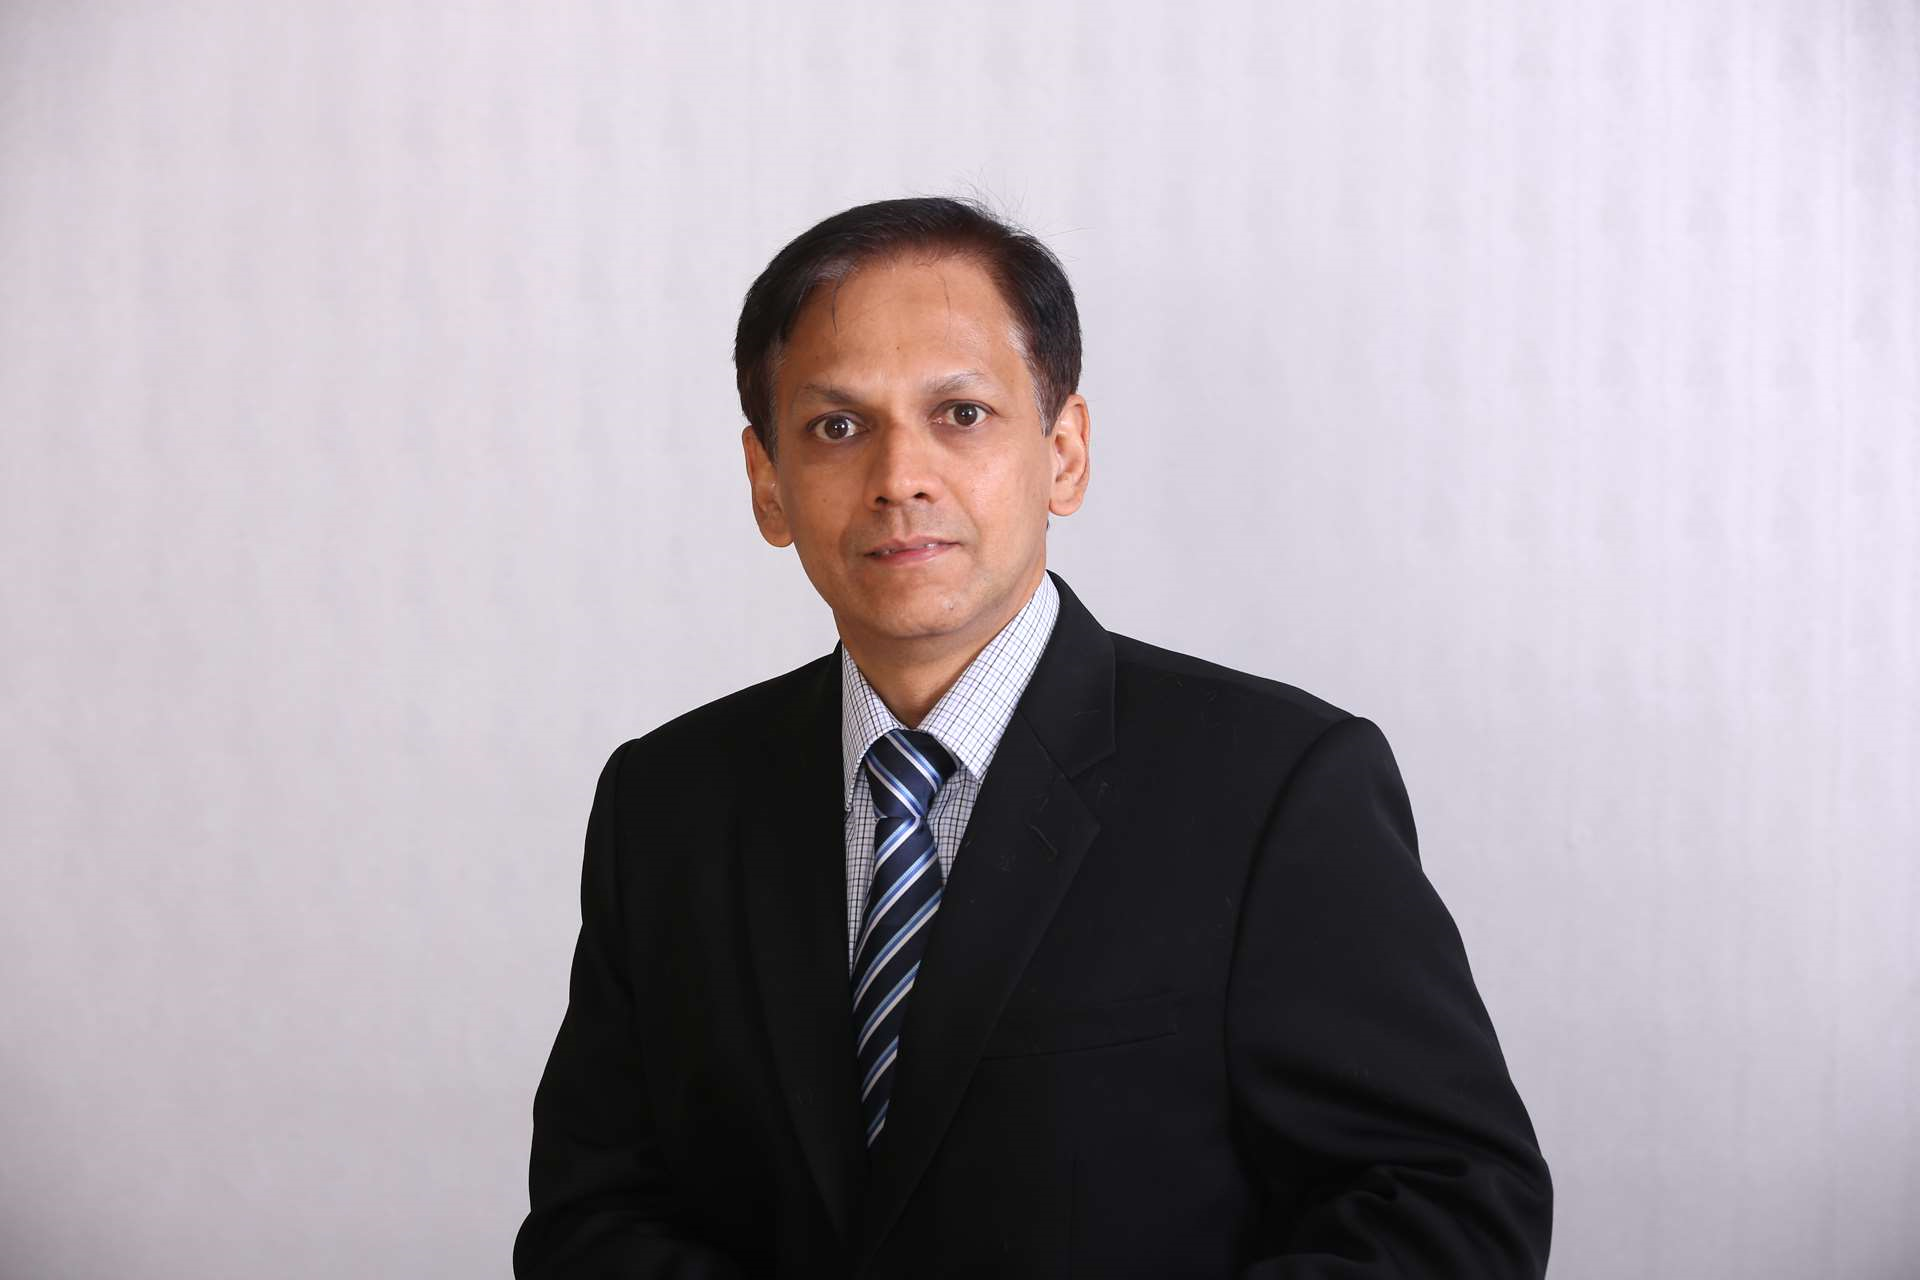 Rejeesh Balasubramaniam, Partner, Audit & Assurance